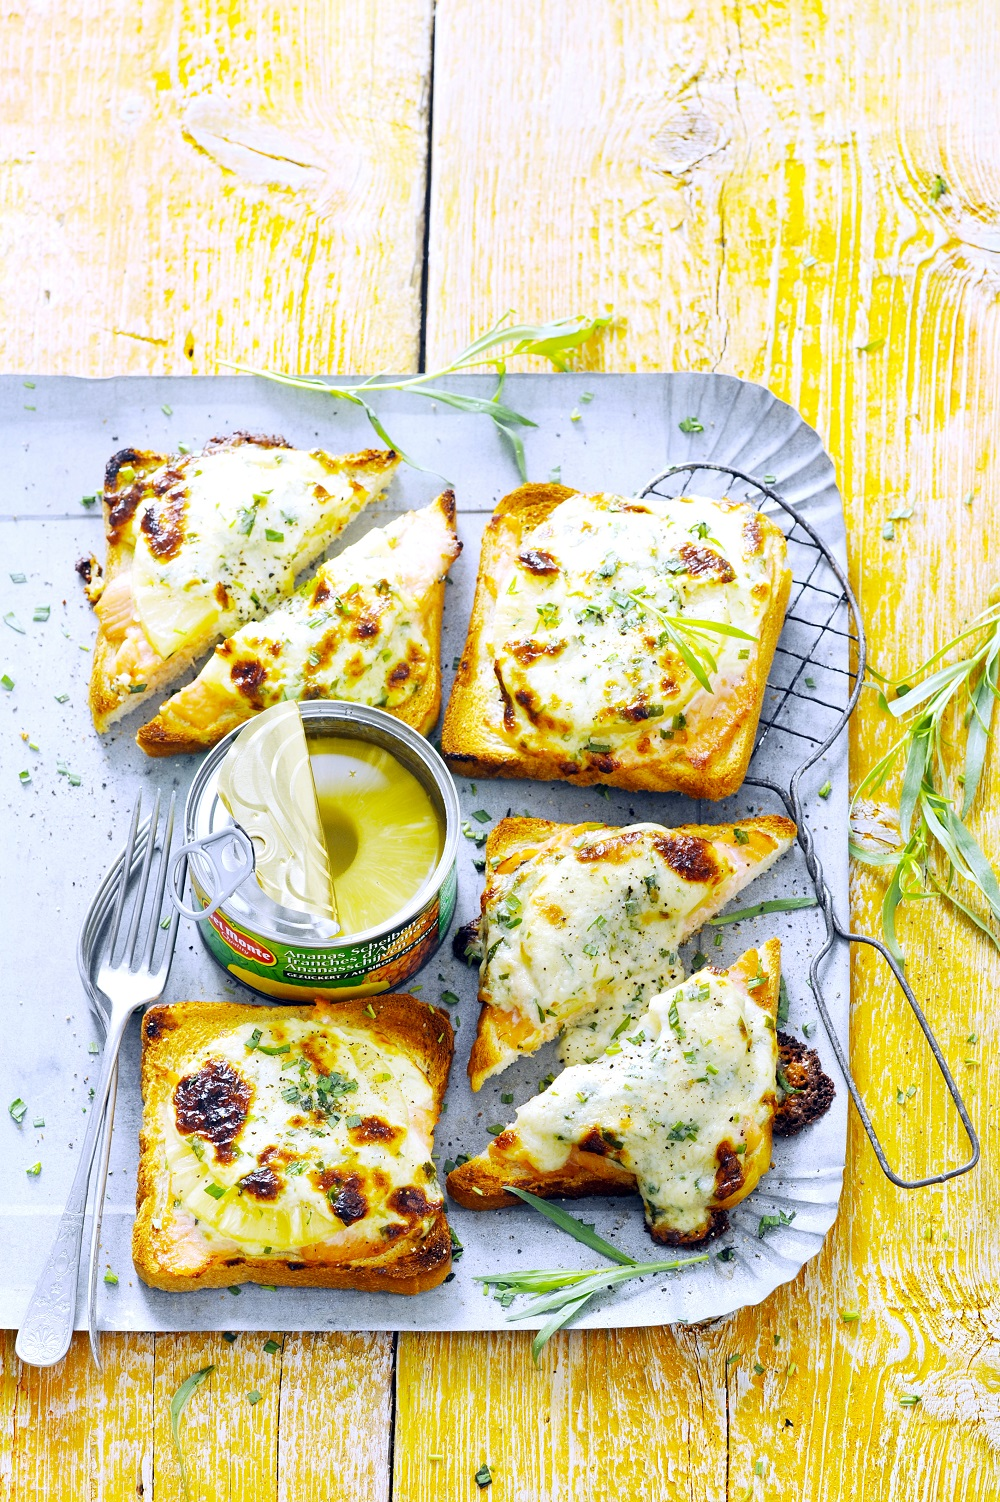 How To Make Pineapple And Gorgonzola Toast.